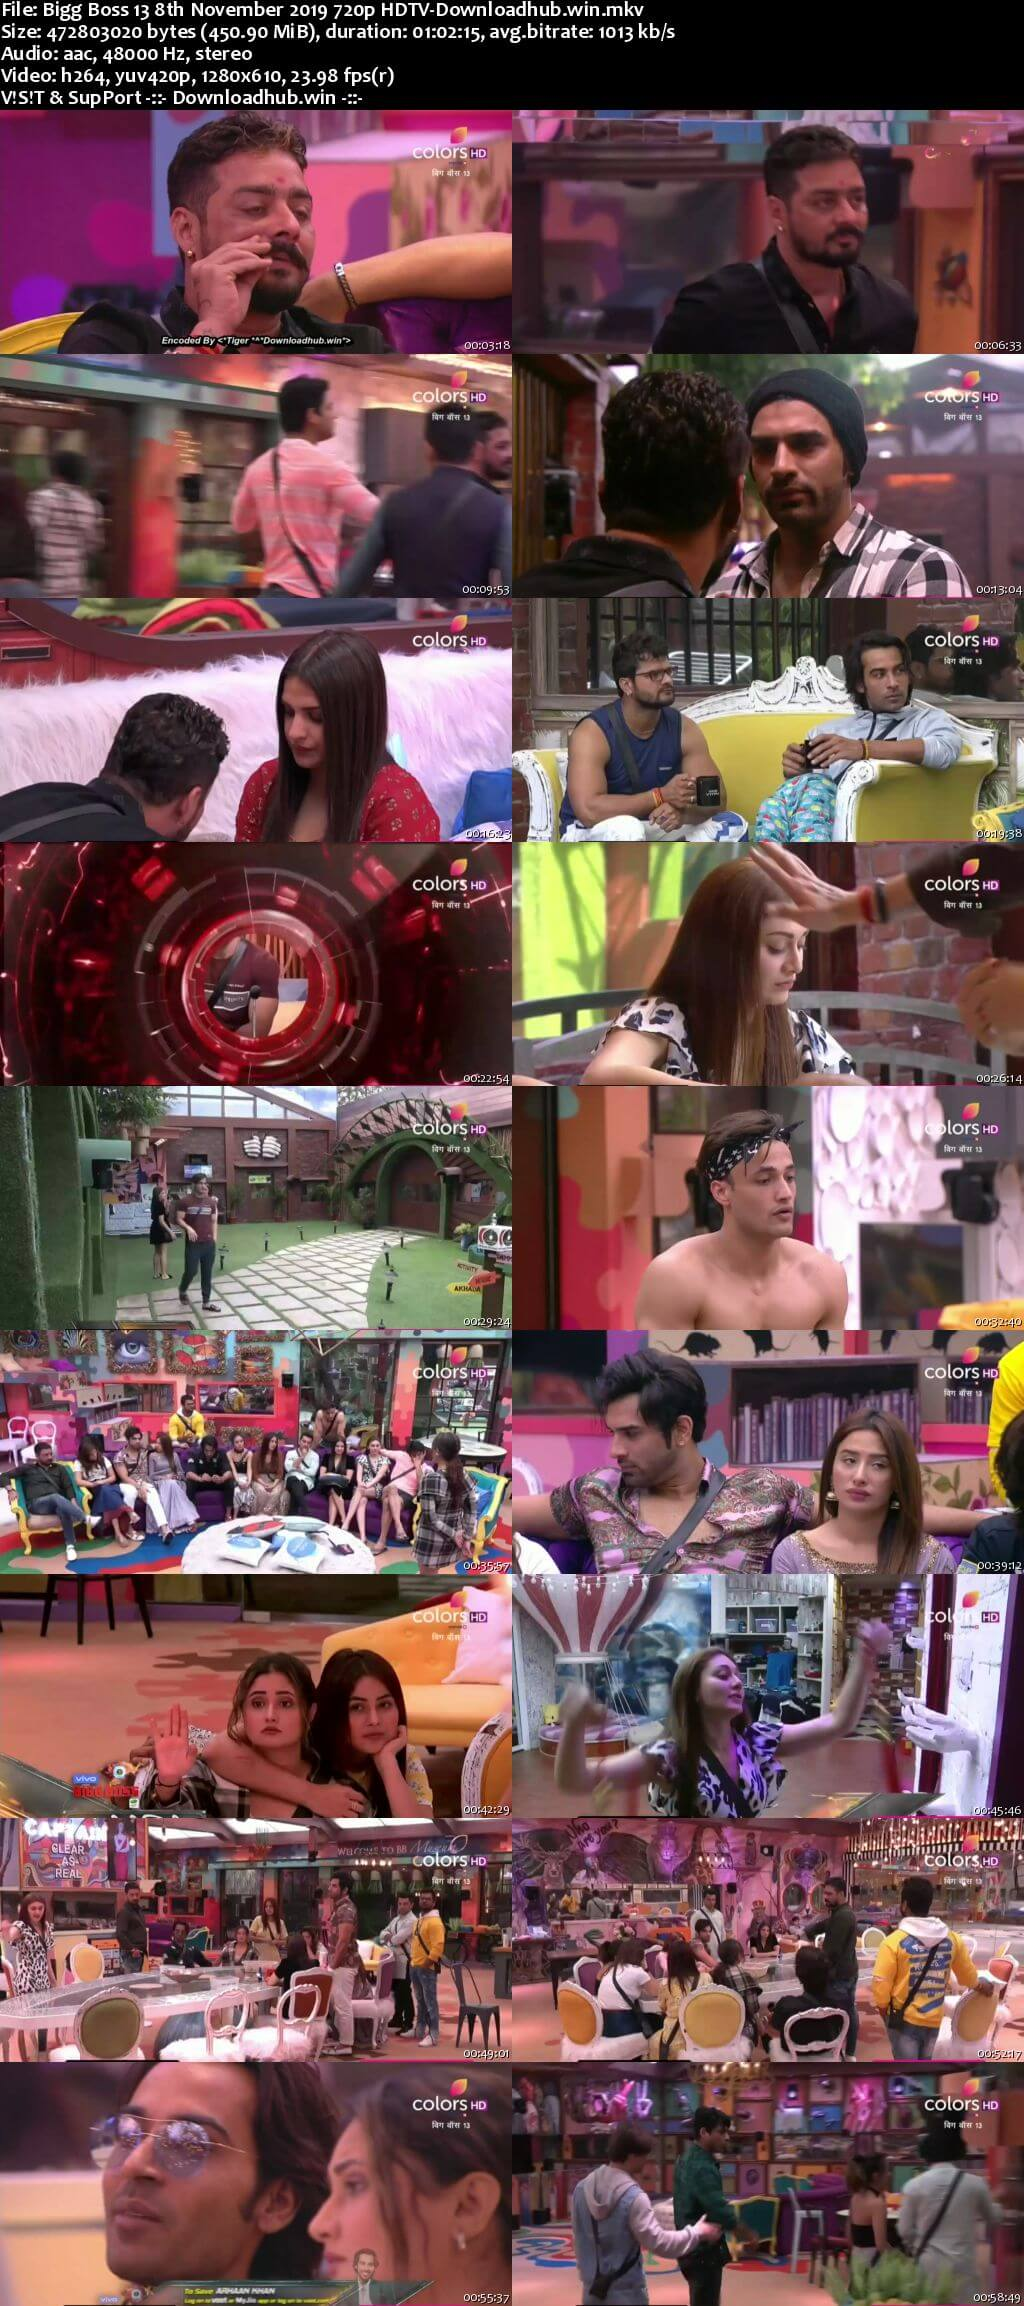 Bigg Boss 13 08 November 2019 Episode 39 HDTV 720p 480p